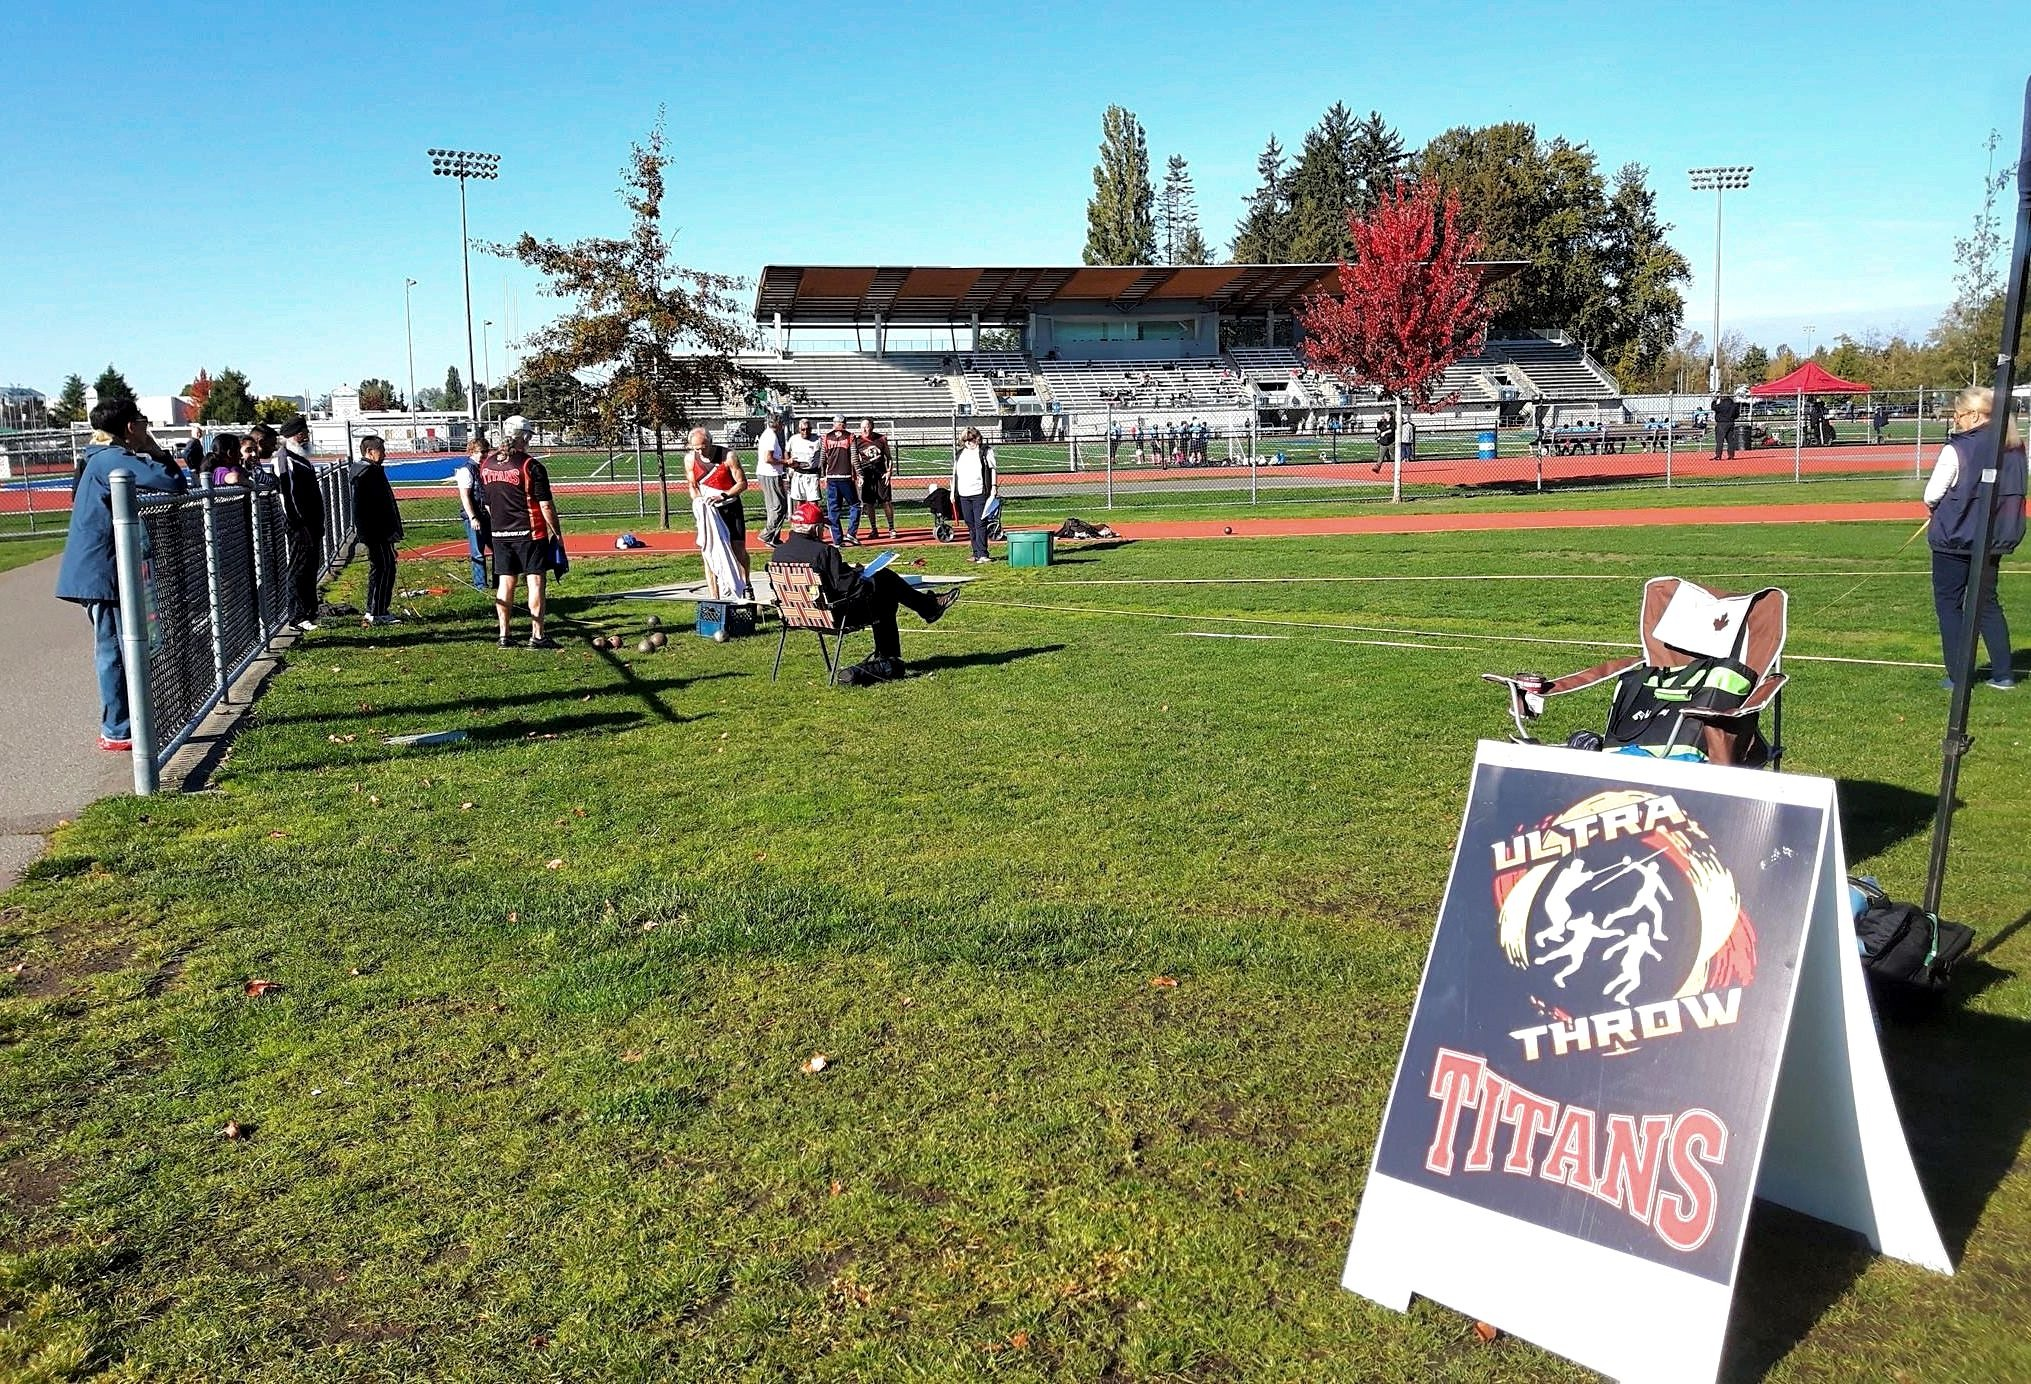 Shot put underway during our October 2017 festival at McLeod Park in Langley, BC.